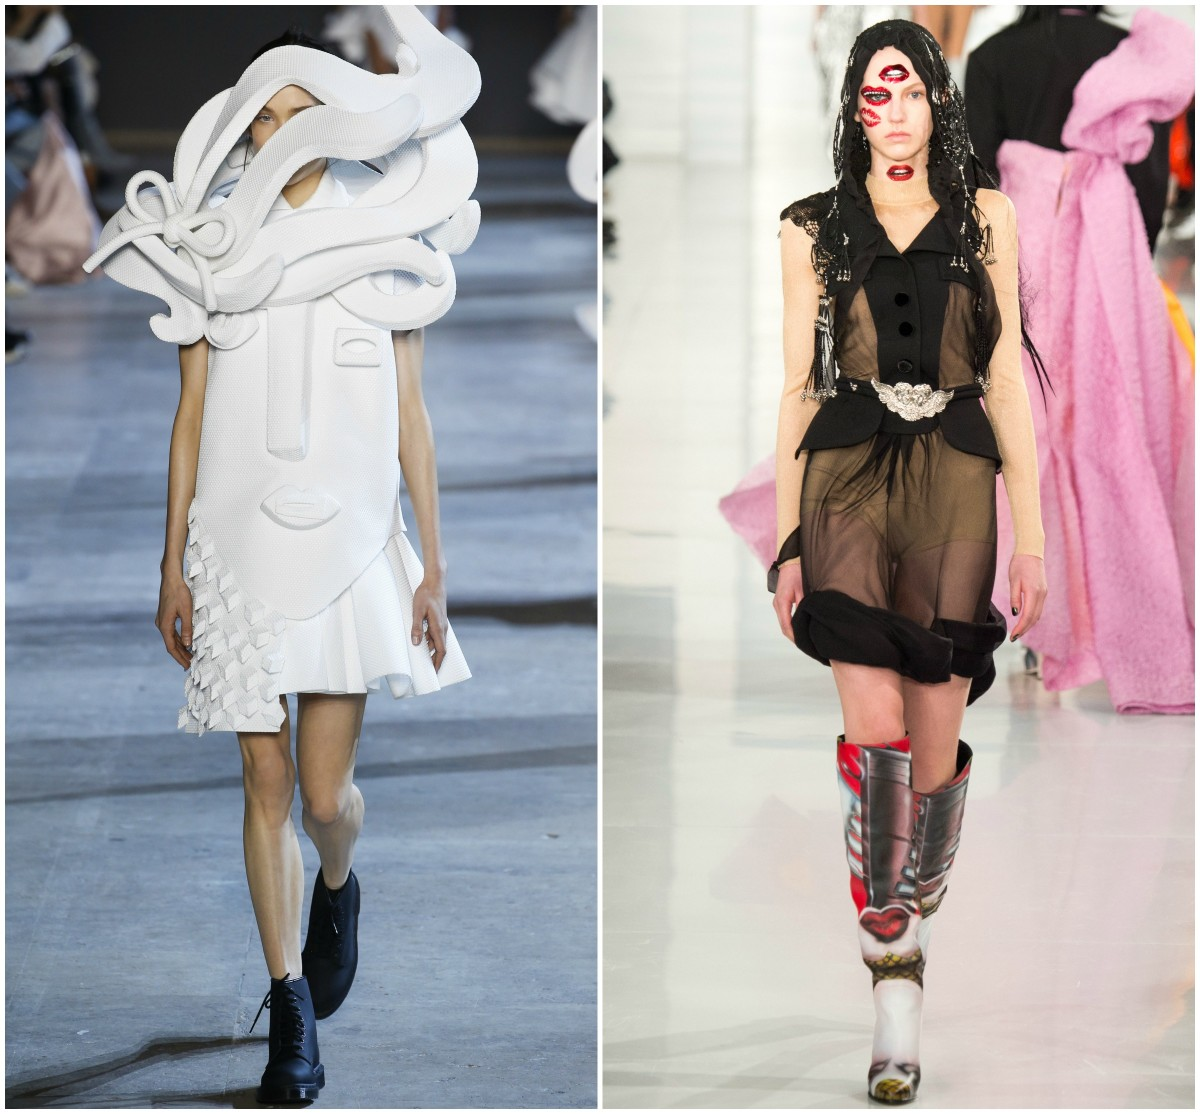 Spring 2016 Couture looks from Viktor & Rolf and Maison Margiela